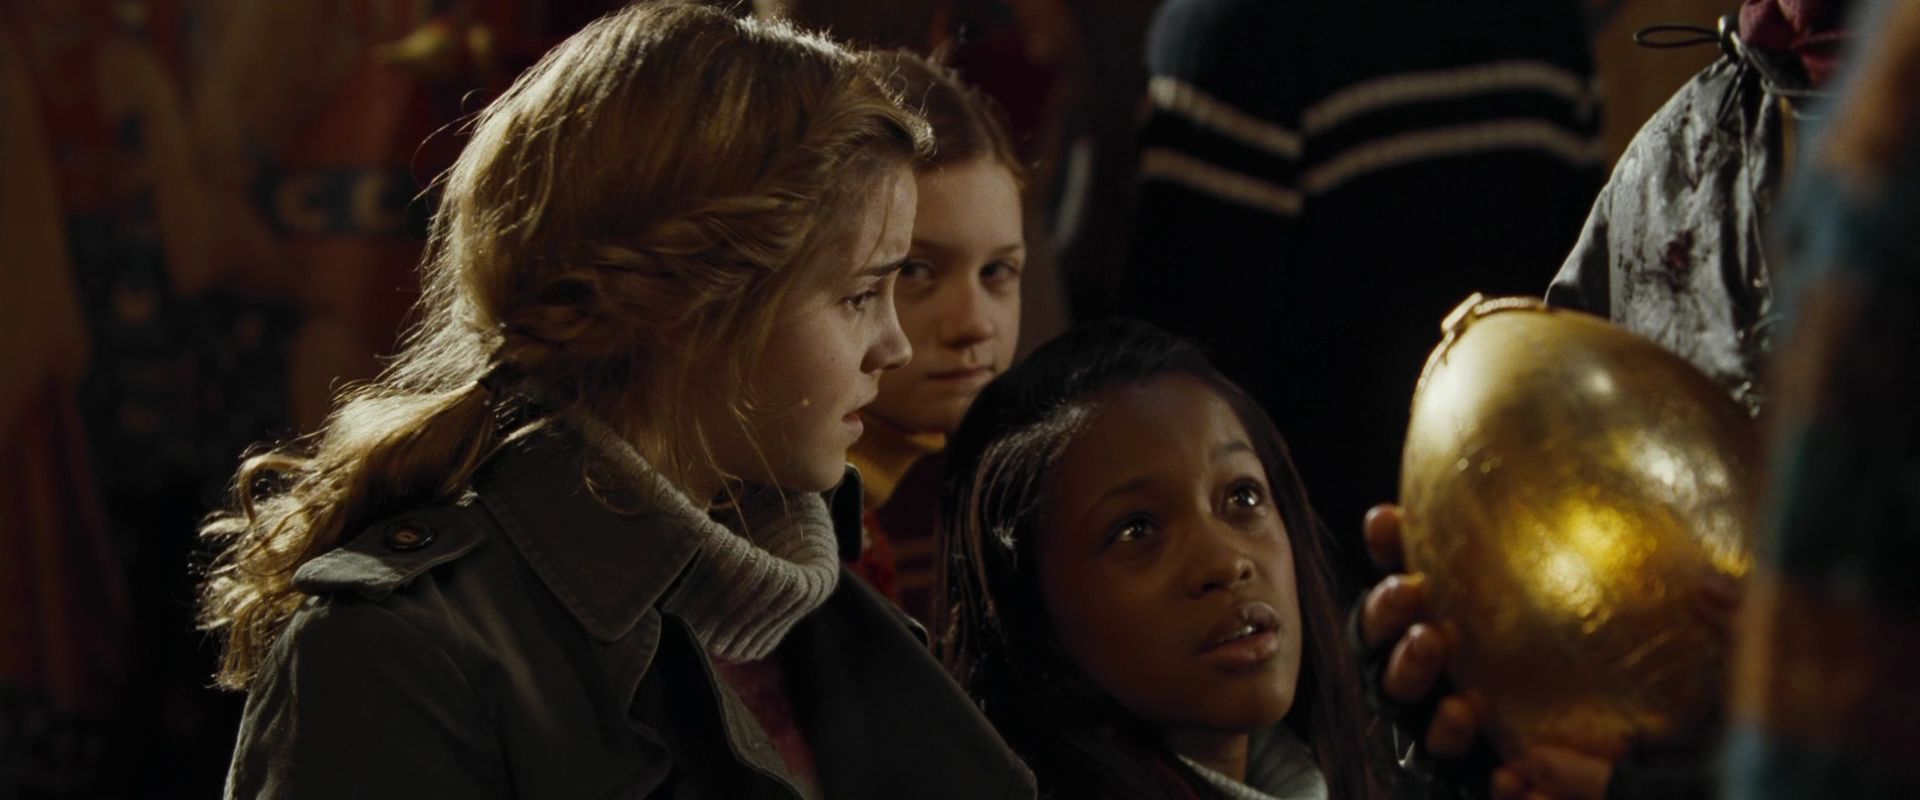 Hermione - Goblet of Fire - Hermione Granger Image